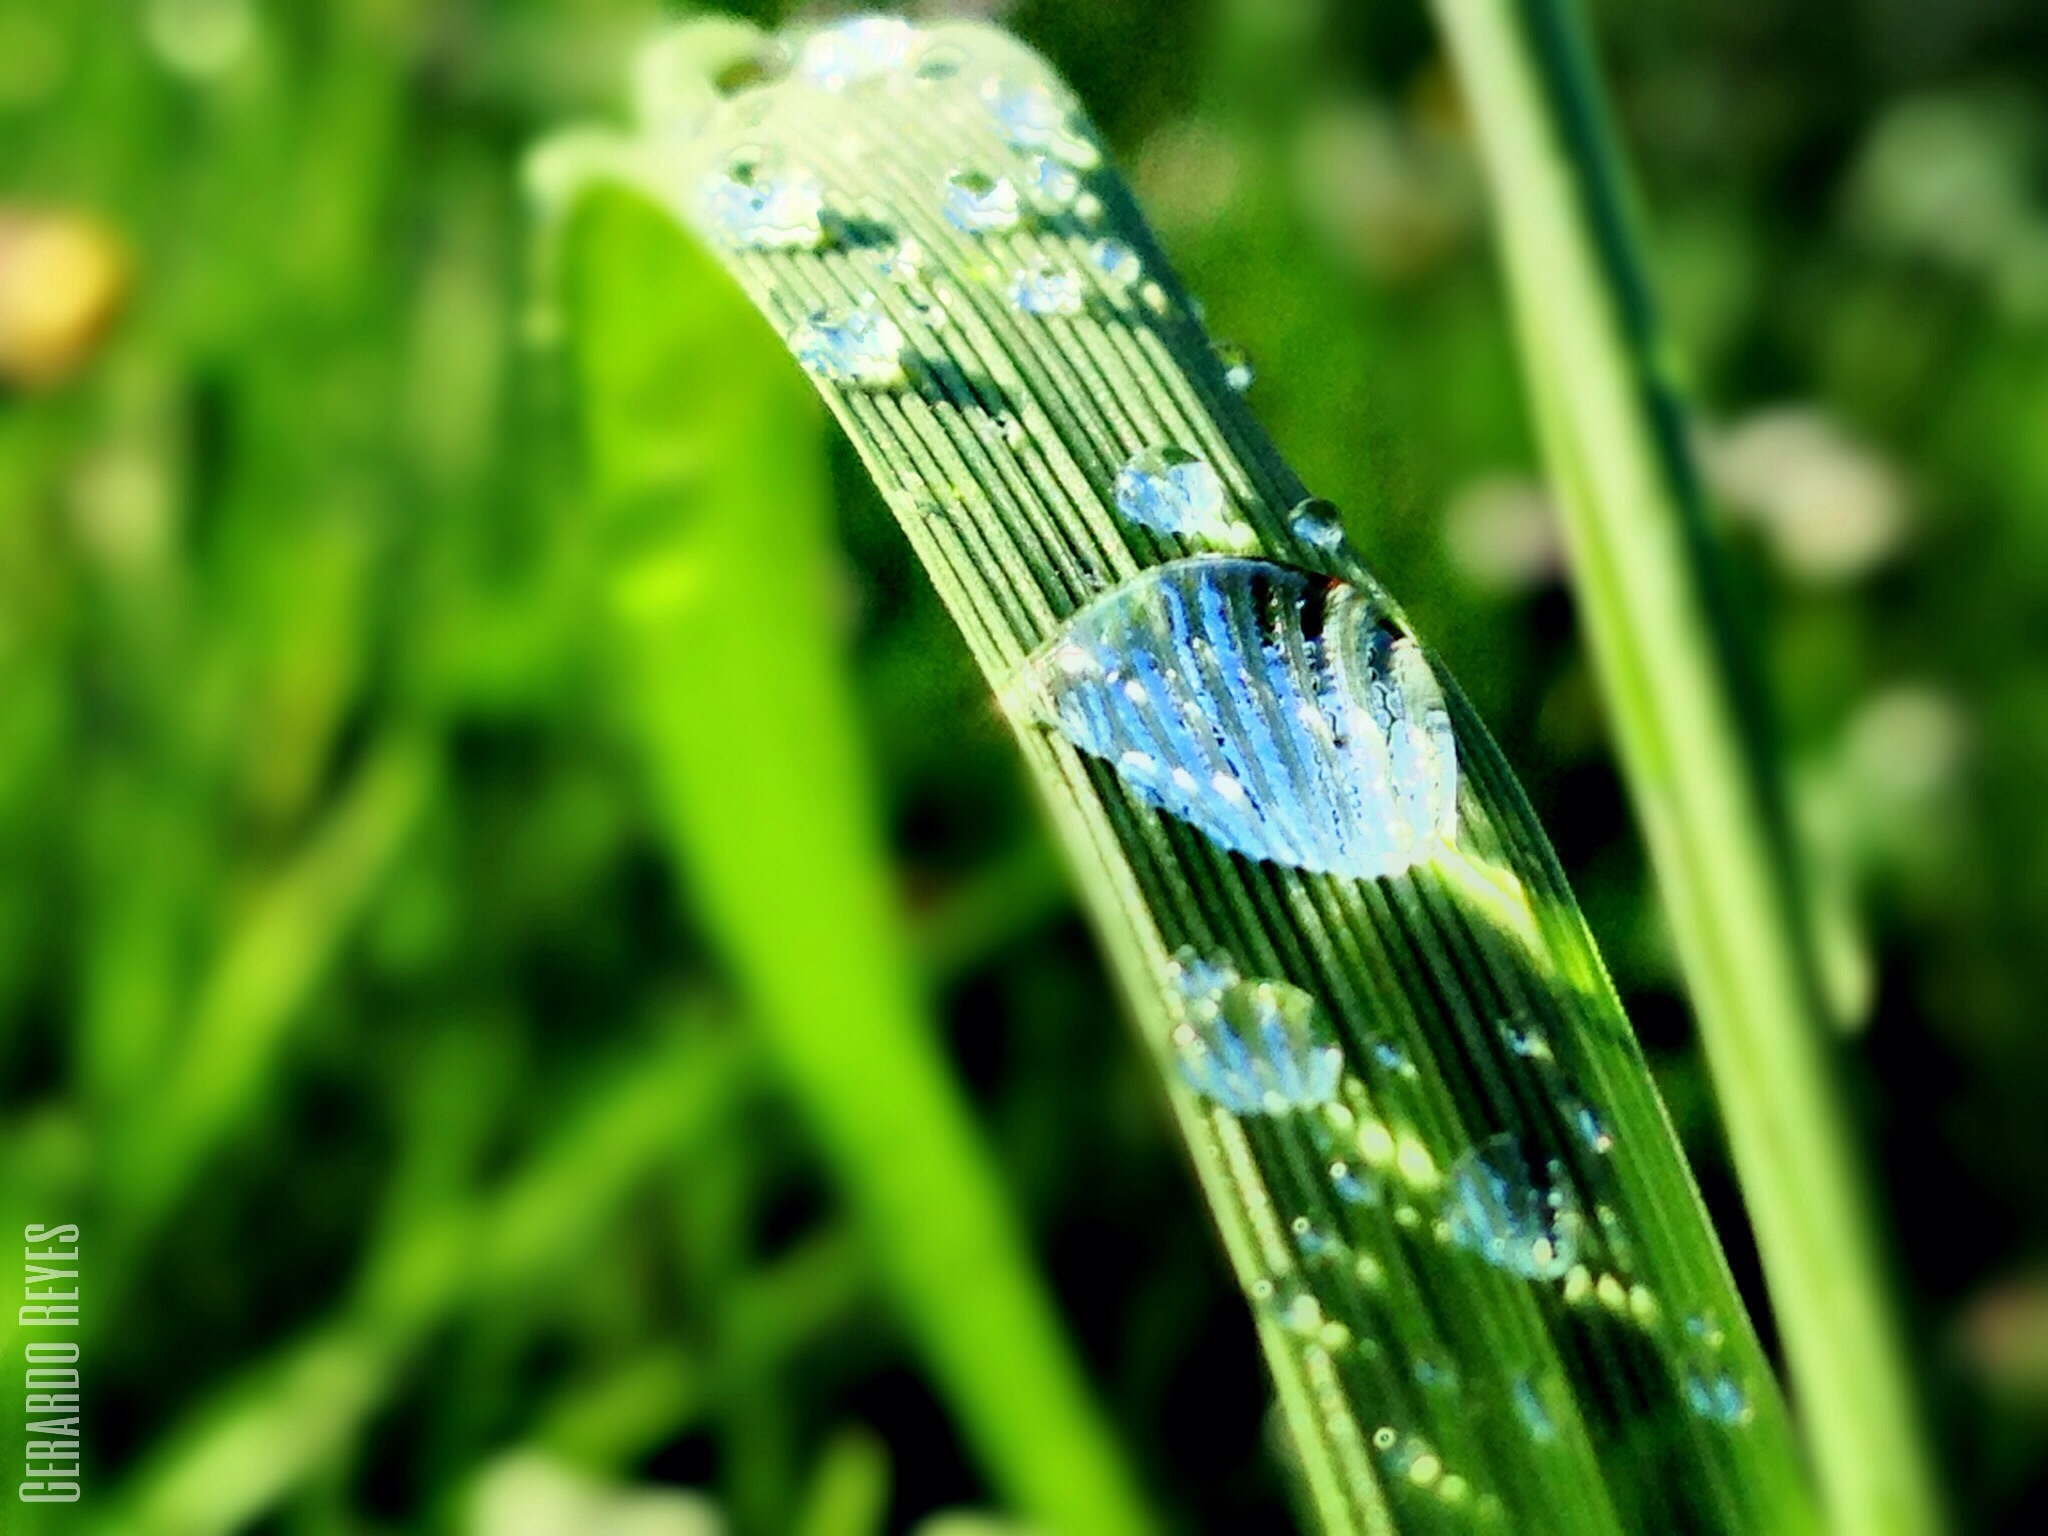 Close up photo of a dew on the grass